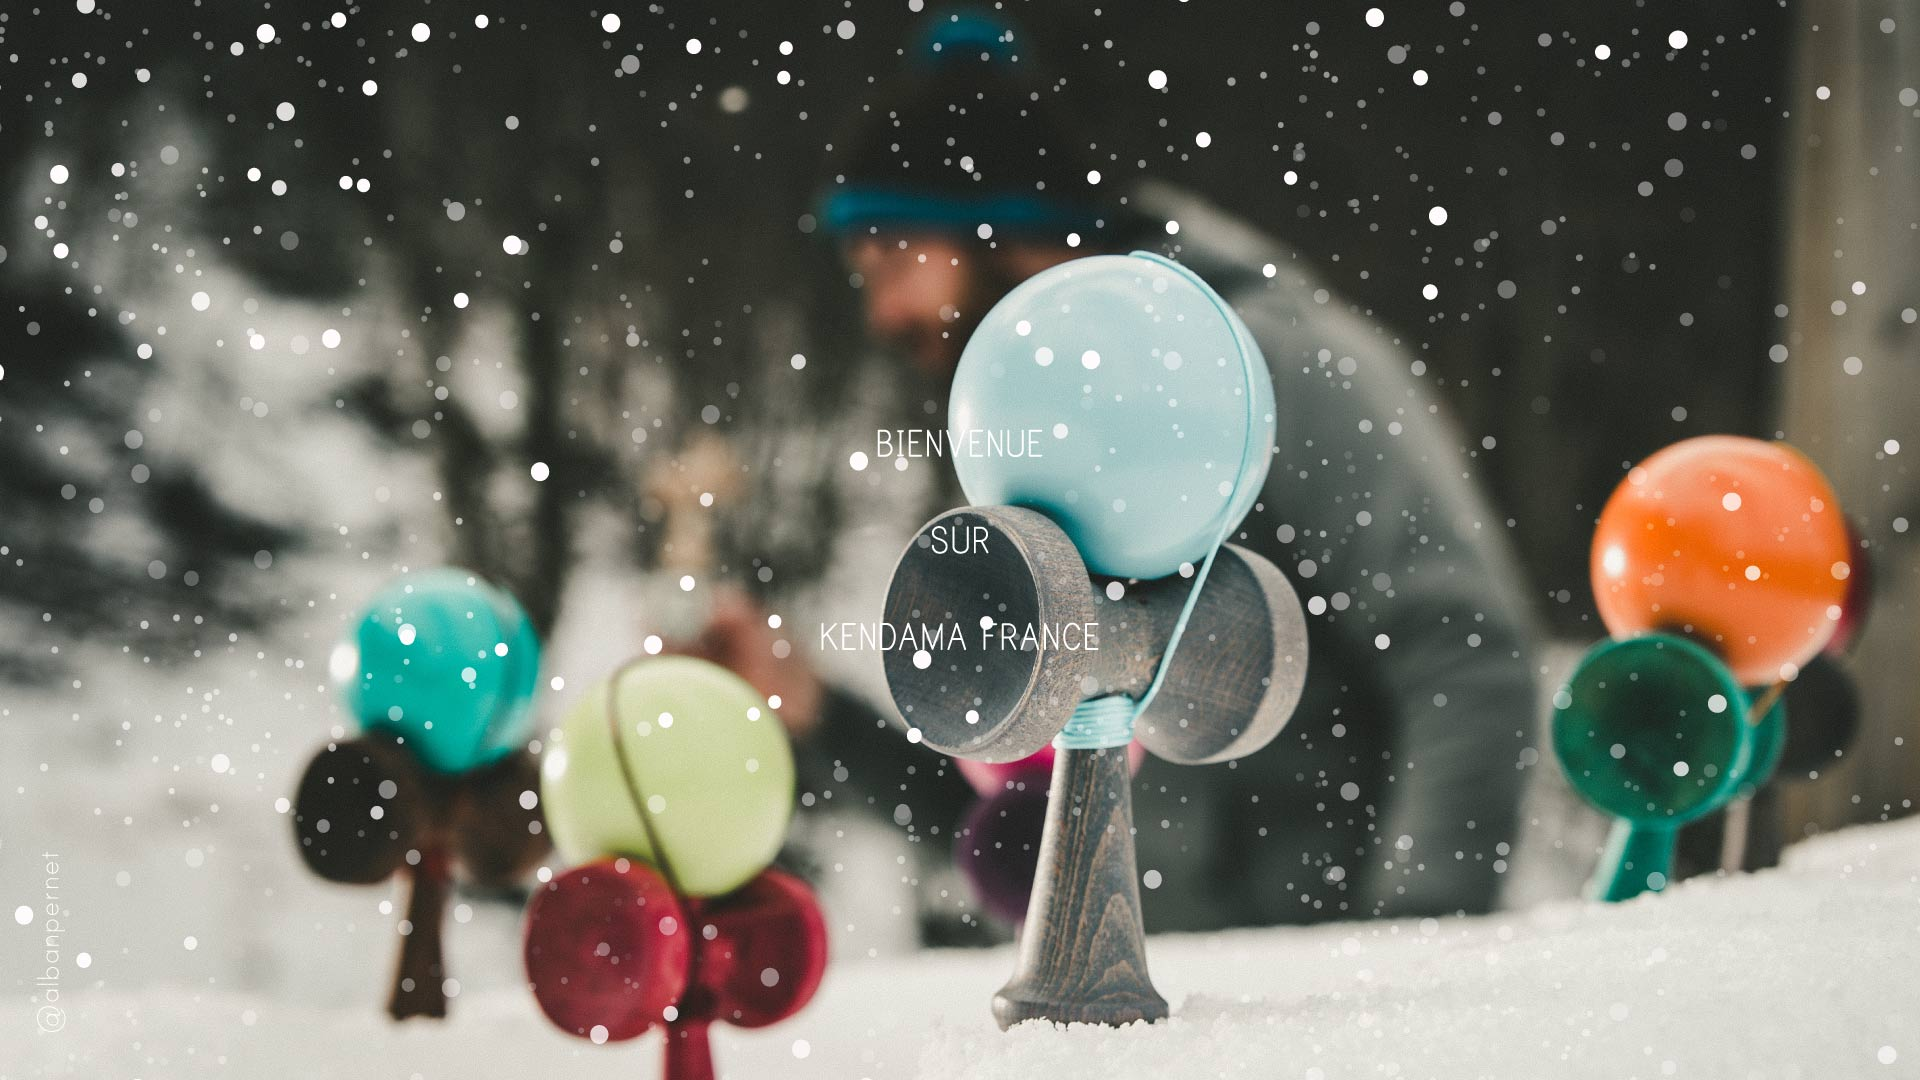 kendama_snow_home_bienvenue_decembre__2018